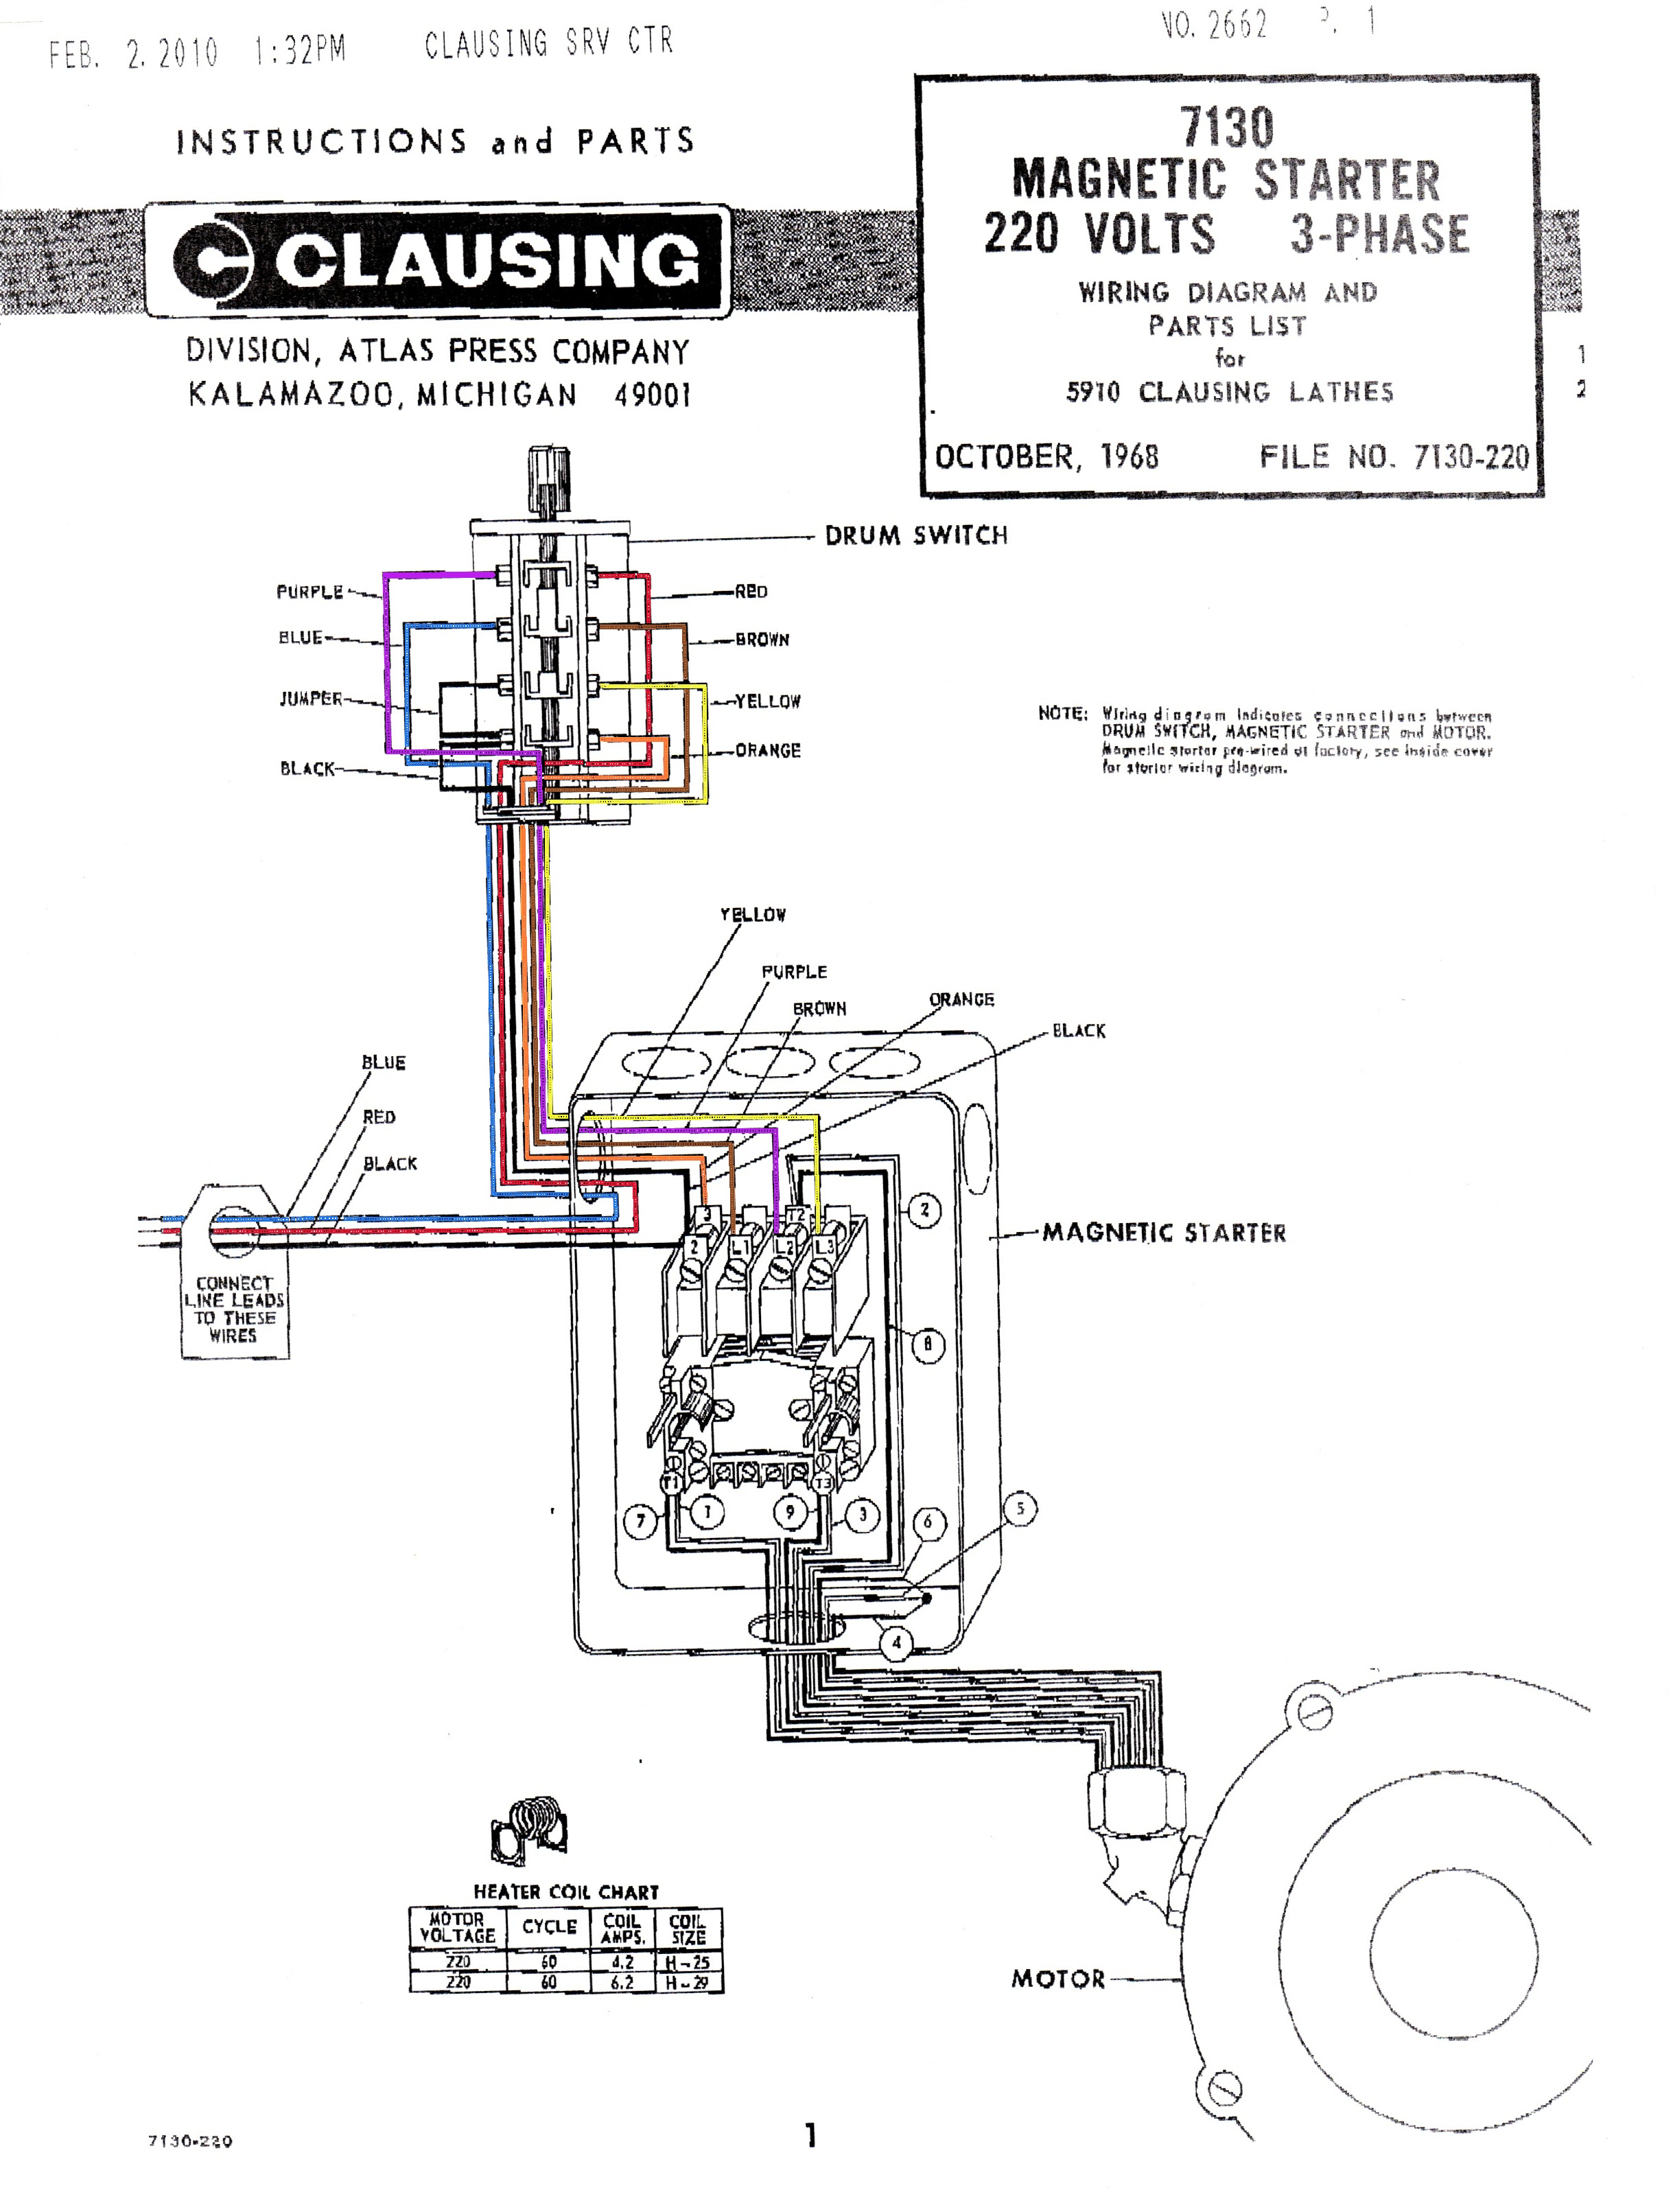 7130 Magnetic Starter Wiring Diagram Color starter wiring diagrams mag wiring diagrams instruction starter wiring diagram at cita.asia